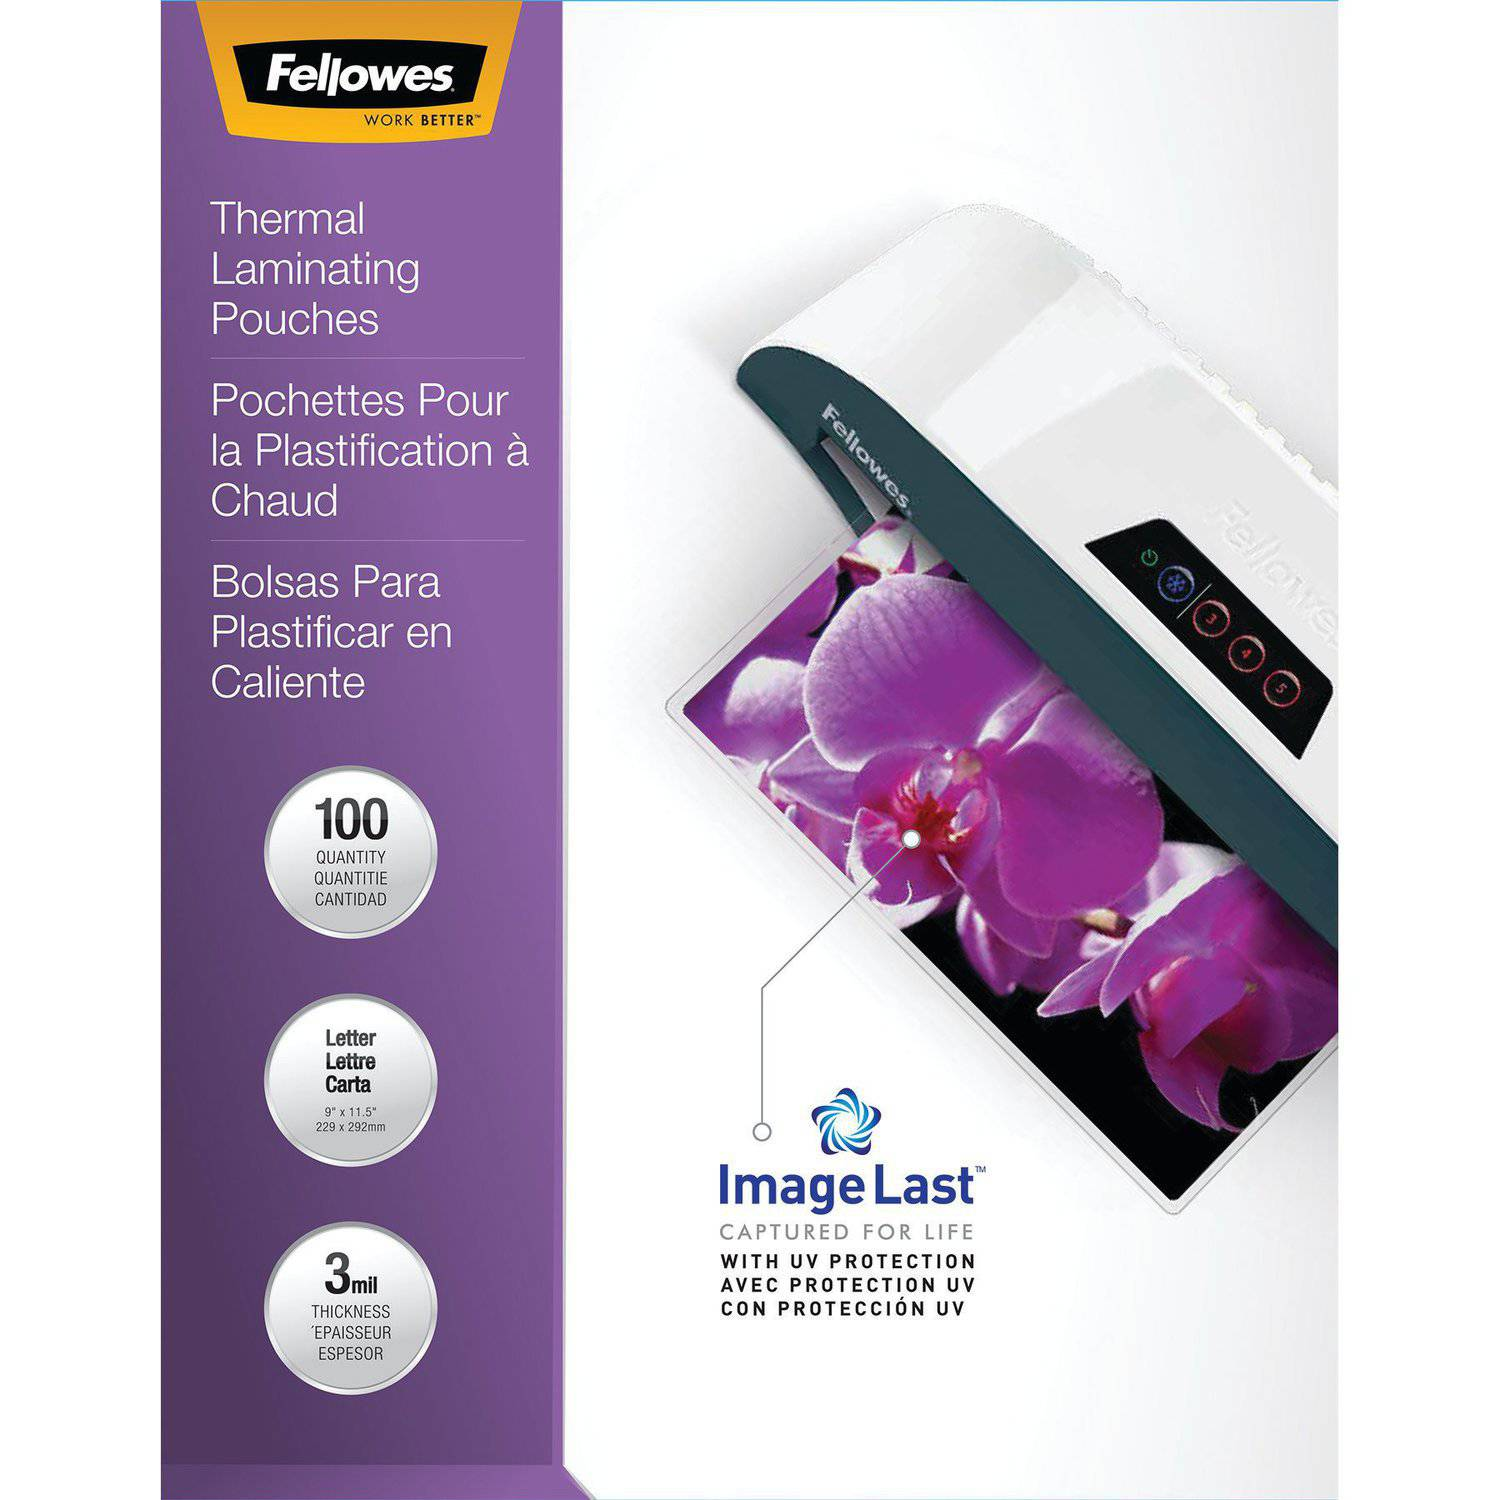 Fellowes Laminating Pouches - Letter, ImageLast, 3 mil, 100 pack